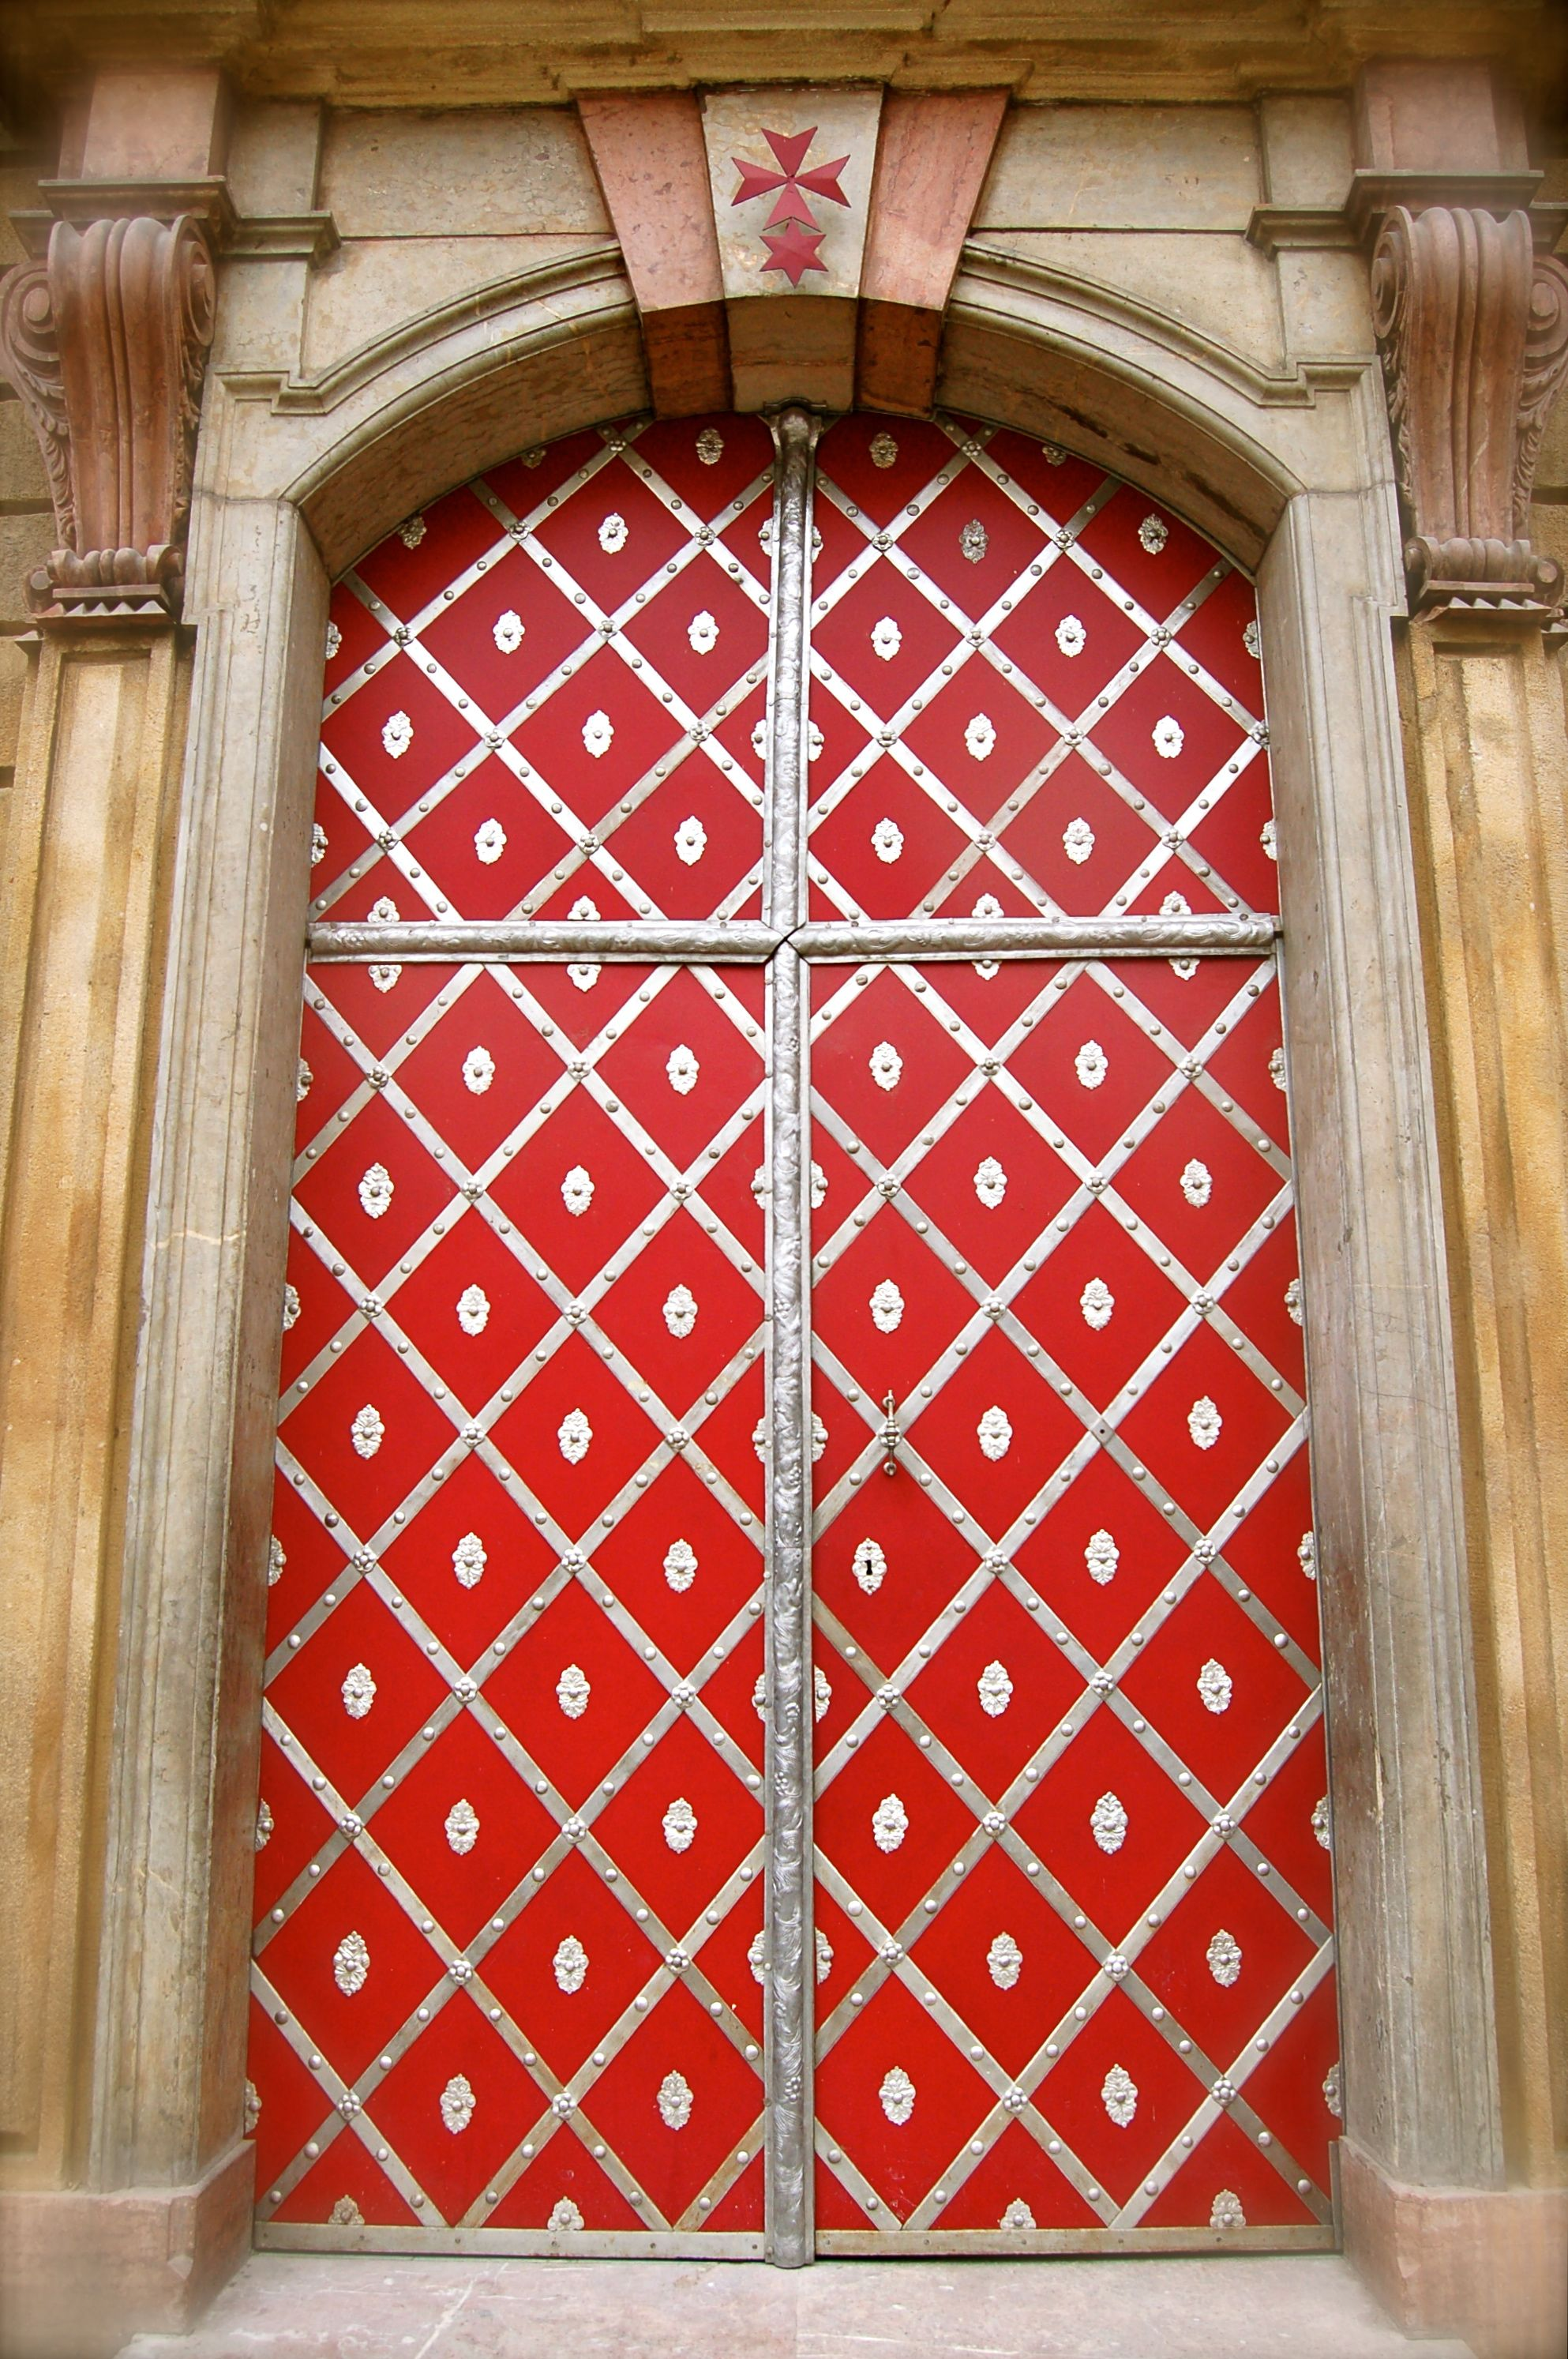 Repeating patterns .  sc 1 st  Pinterest & Pin by Angie Lythgoe on I have a thing for doors | Pinterest ...